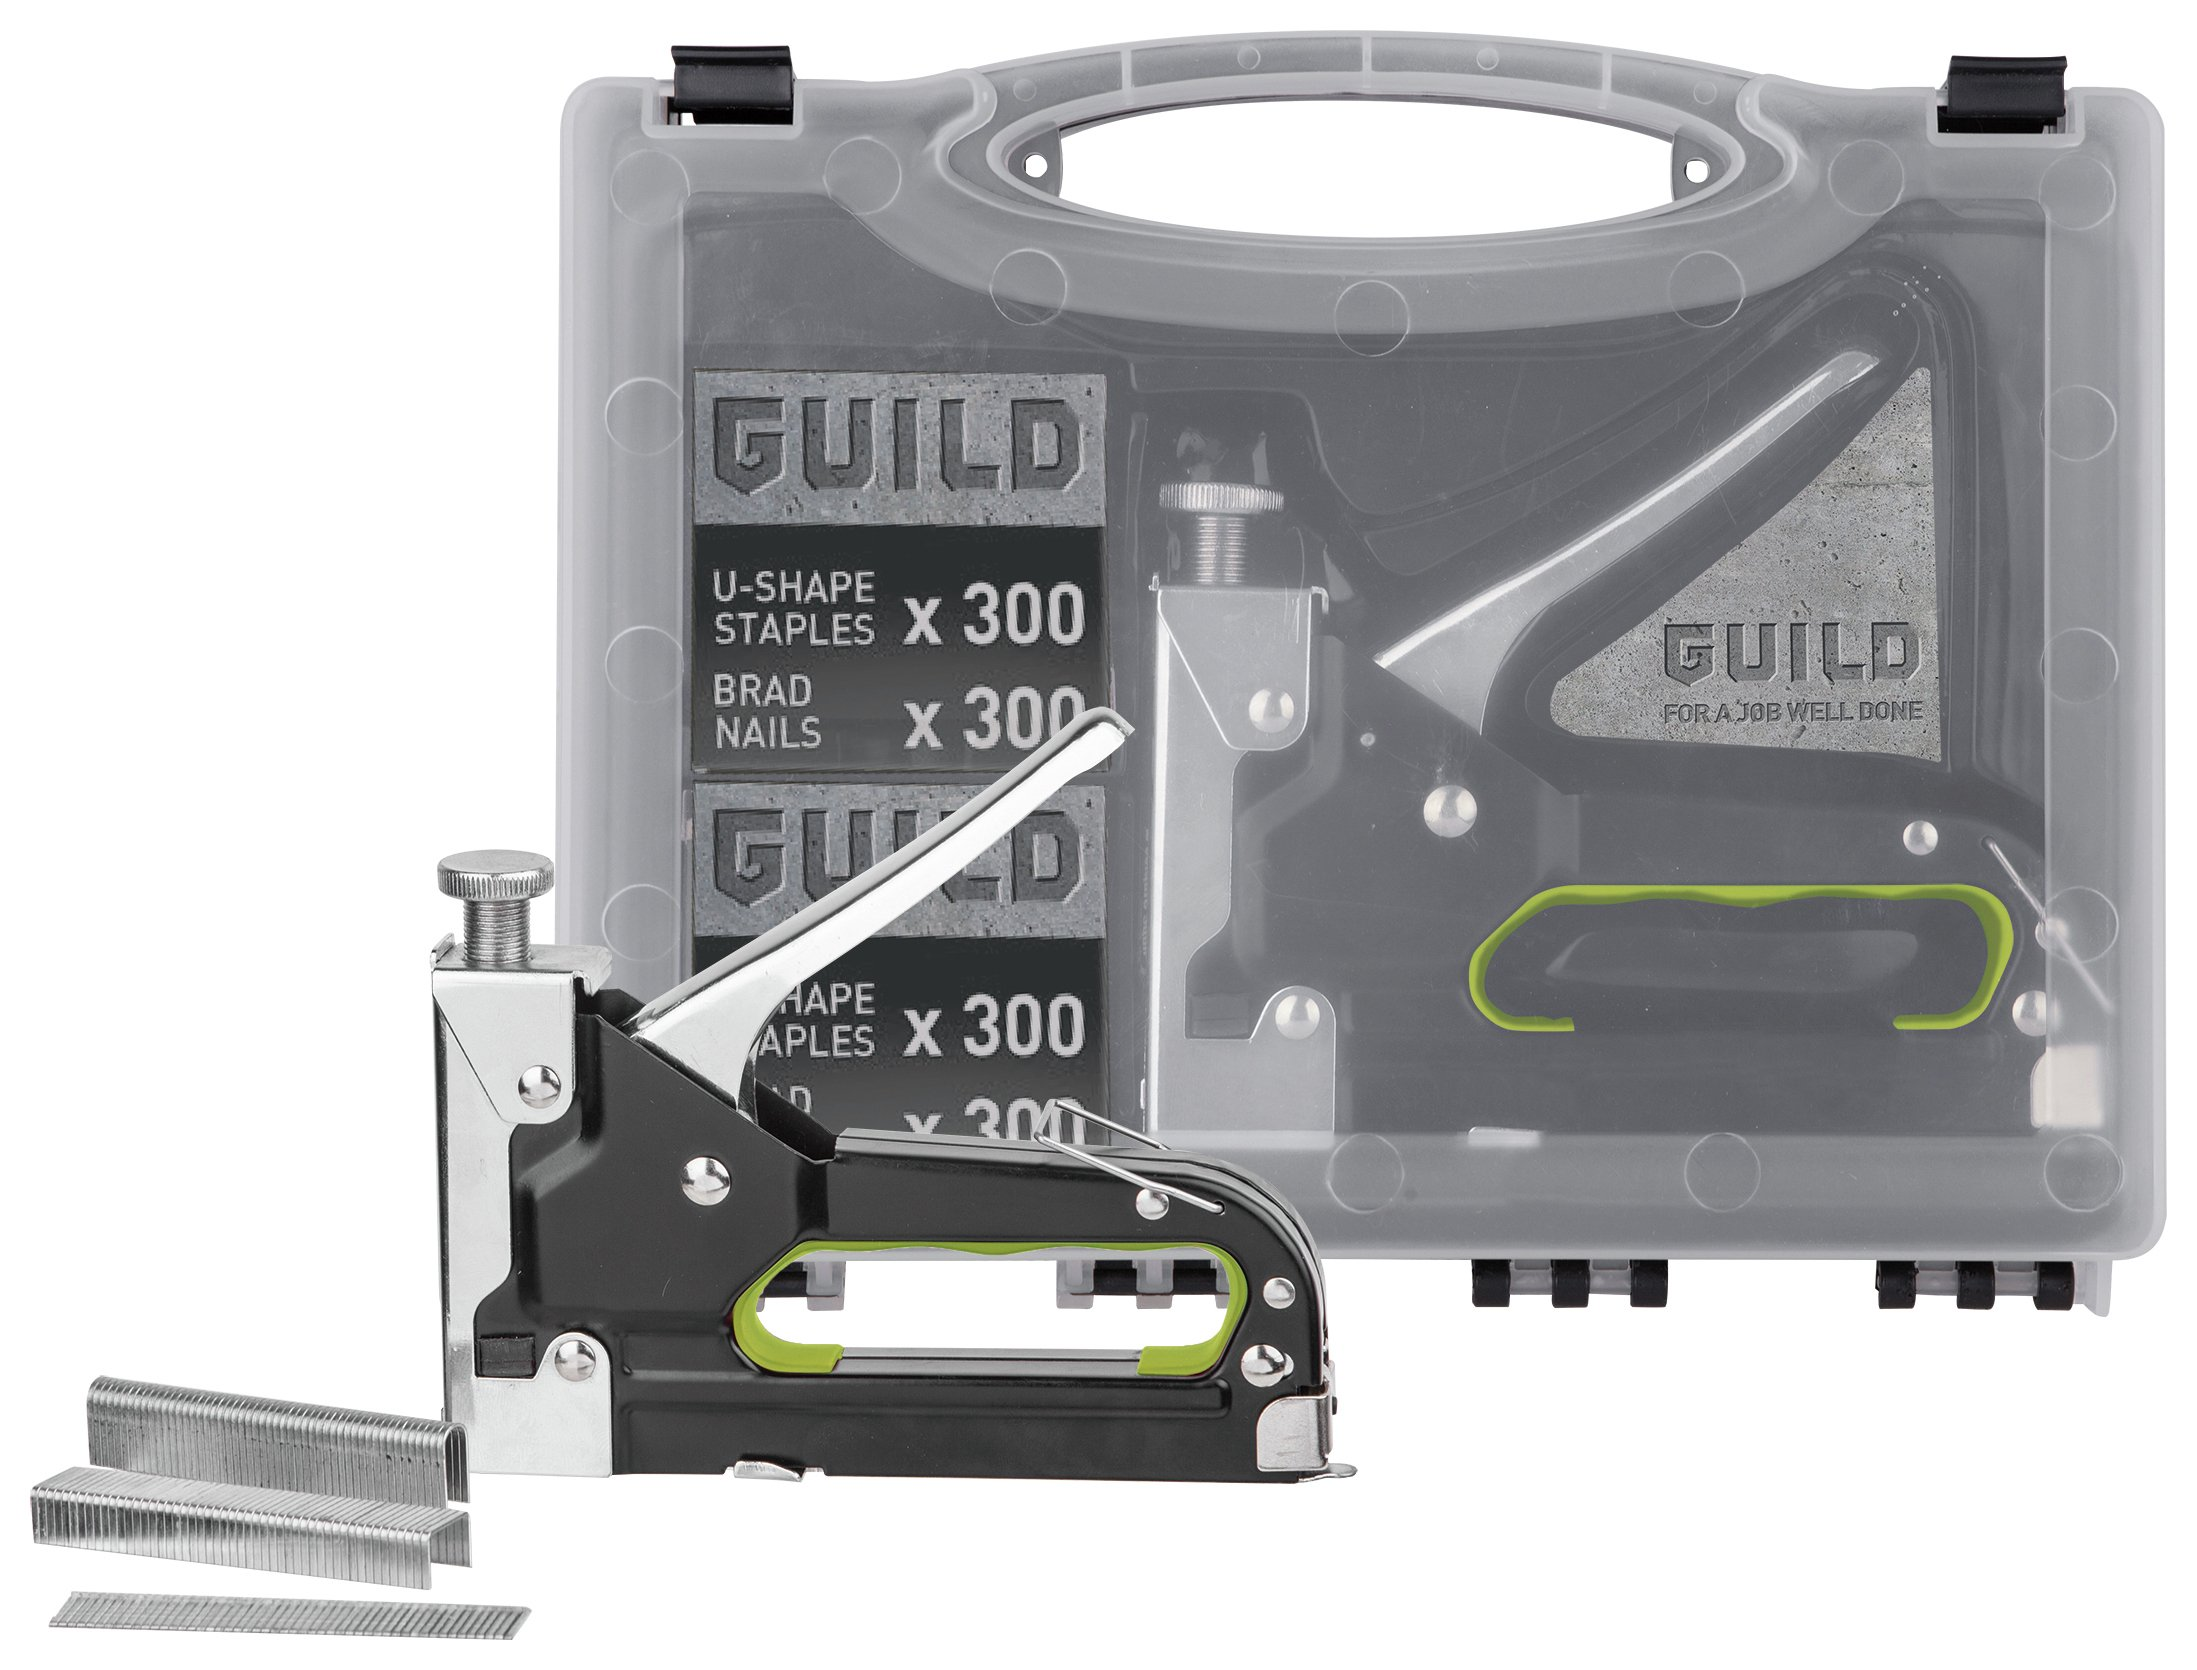 Guild 3-in-1 Manual Nail, Staple and U-Staple Gun